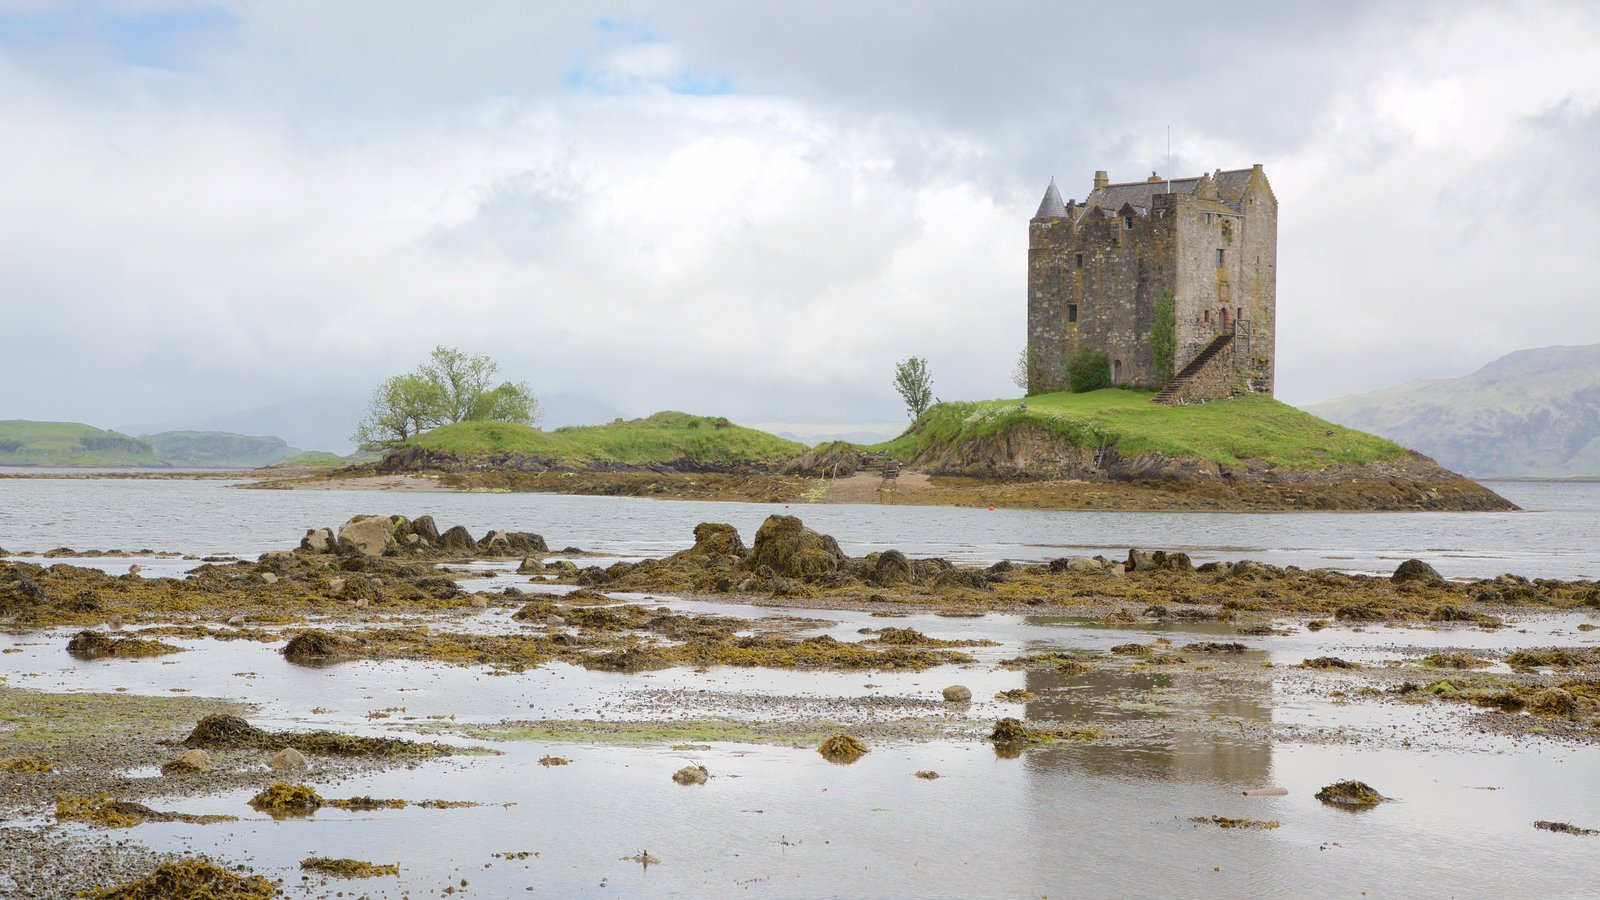 Castle Stalker which includes heritage architecture, a castle and heritage elements